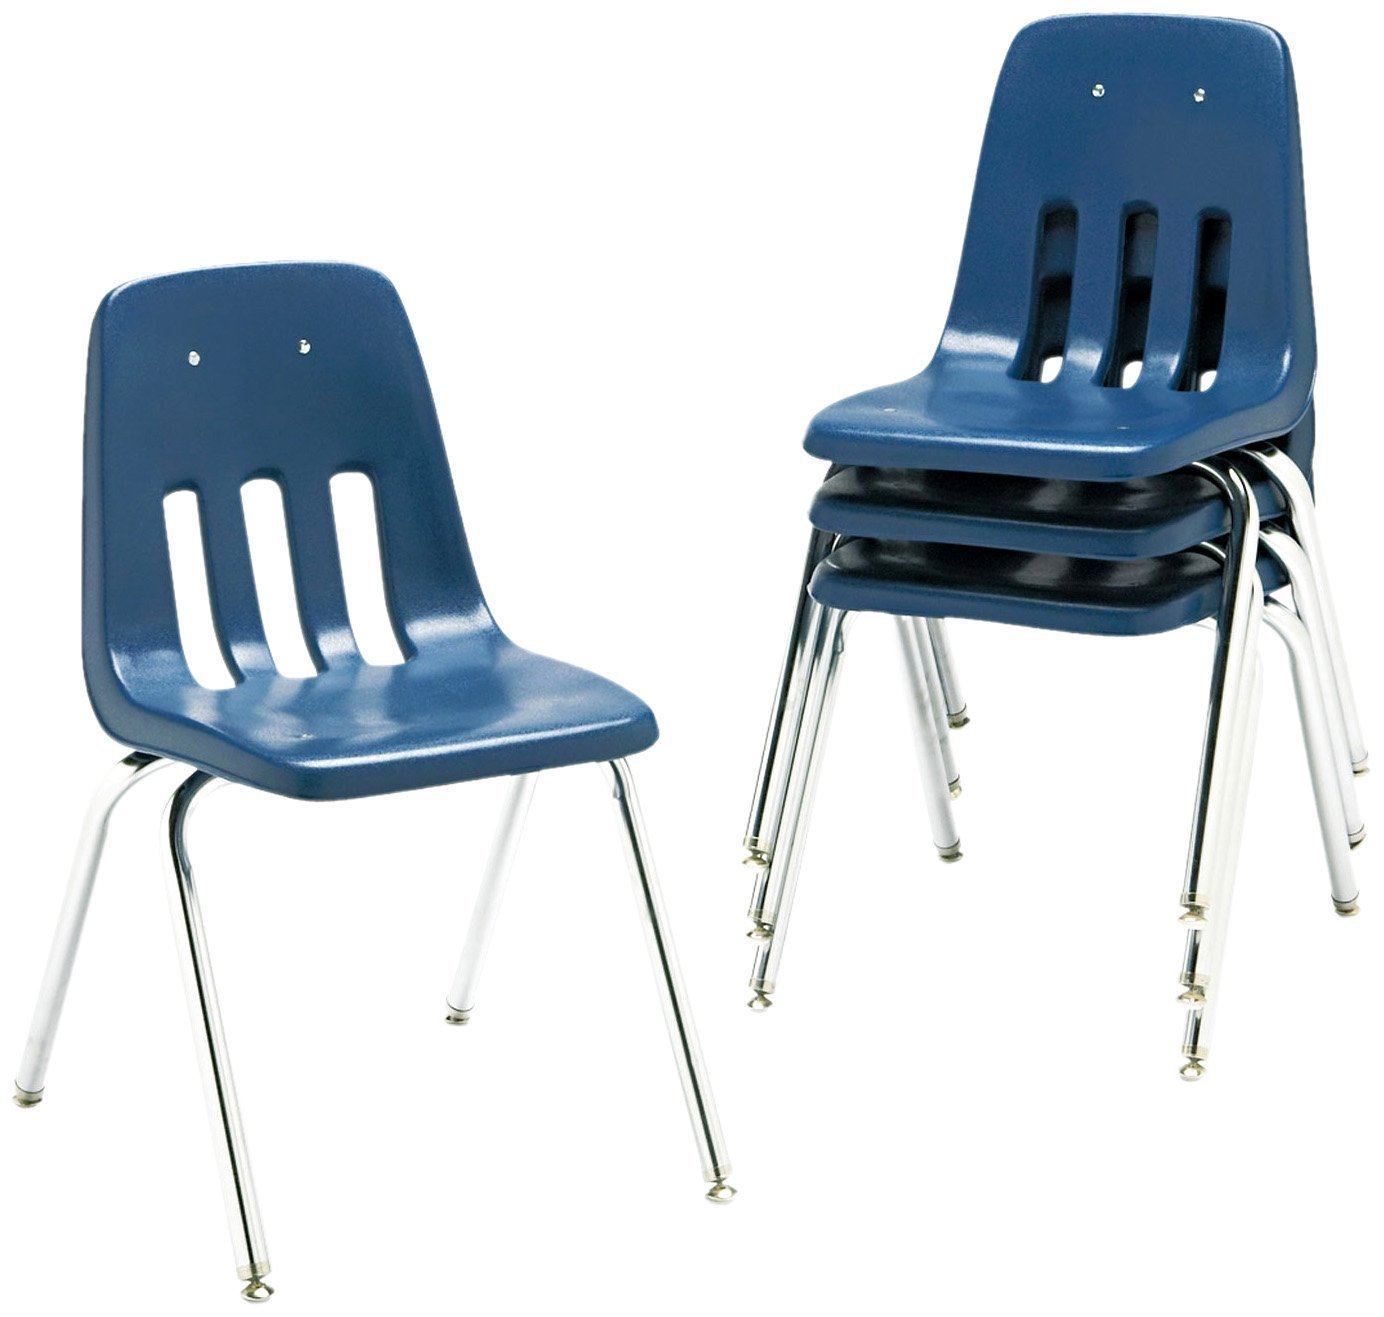 Virco Student Chair, Navy, Soft Plastic Shell, 16'' Seat Height, Chrome Frame, for 3rd - 4th Grade, 4 Pack (9016-BLU51)